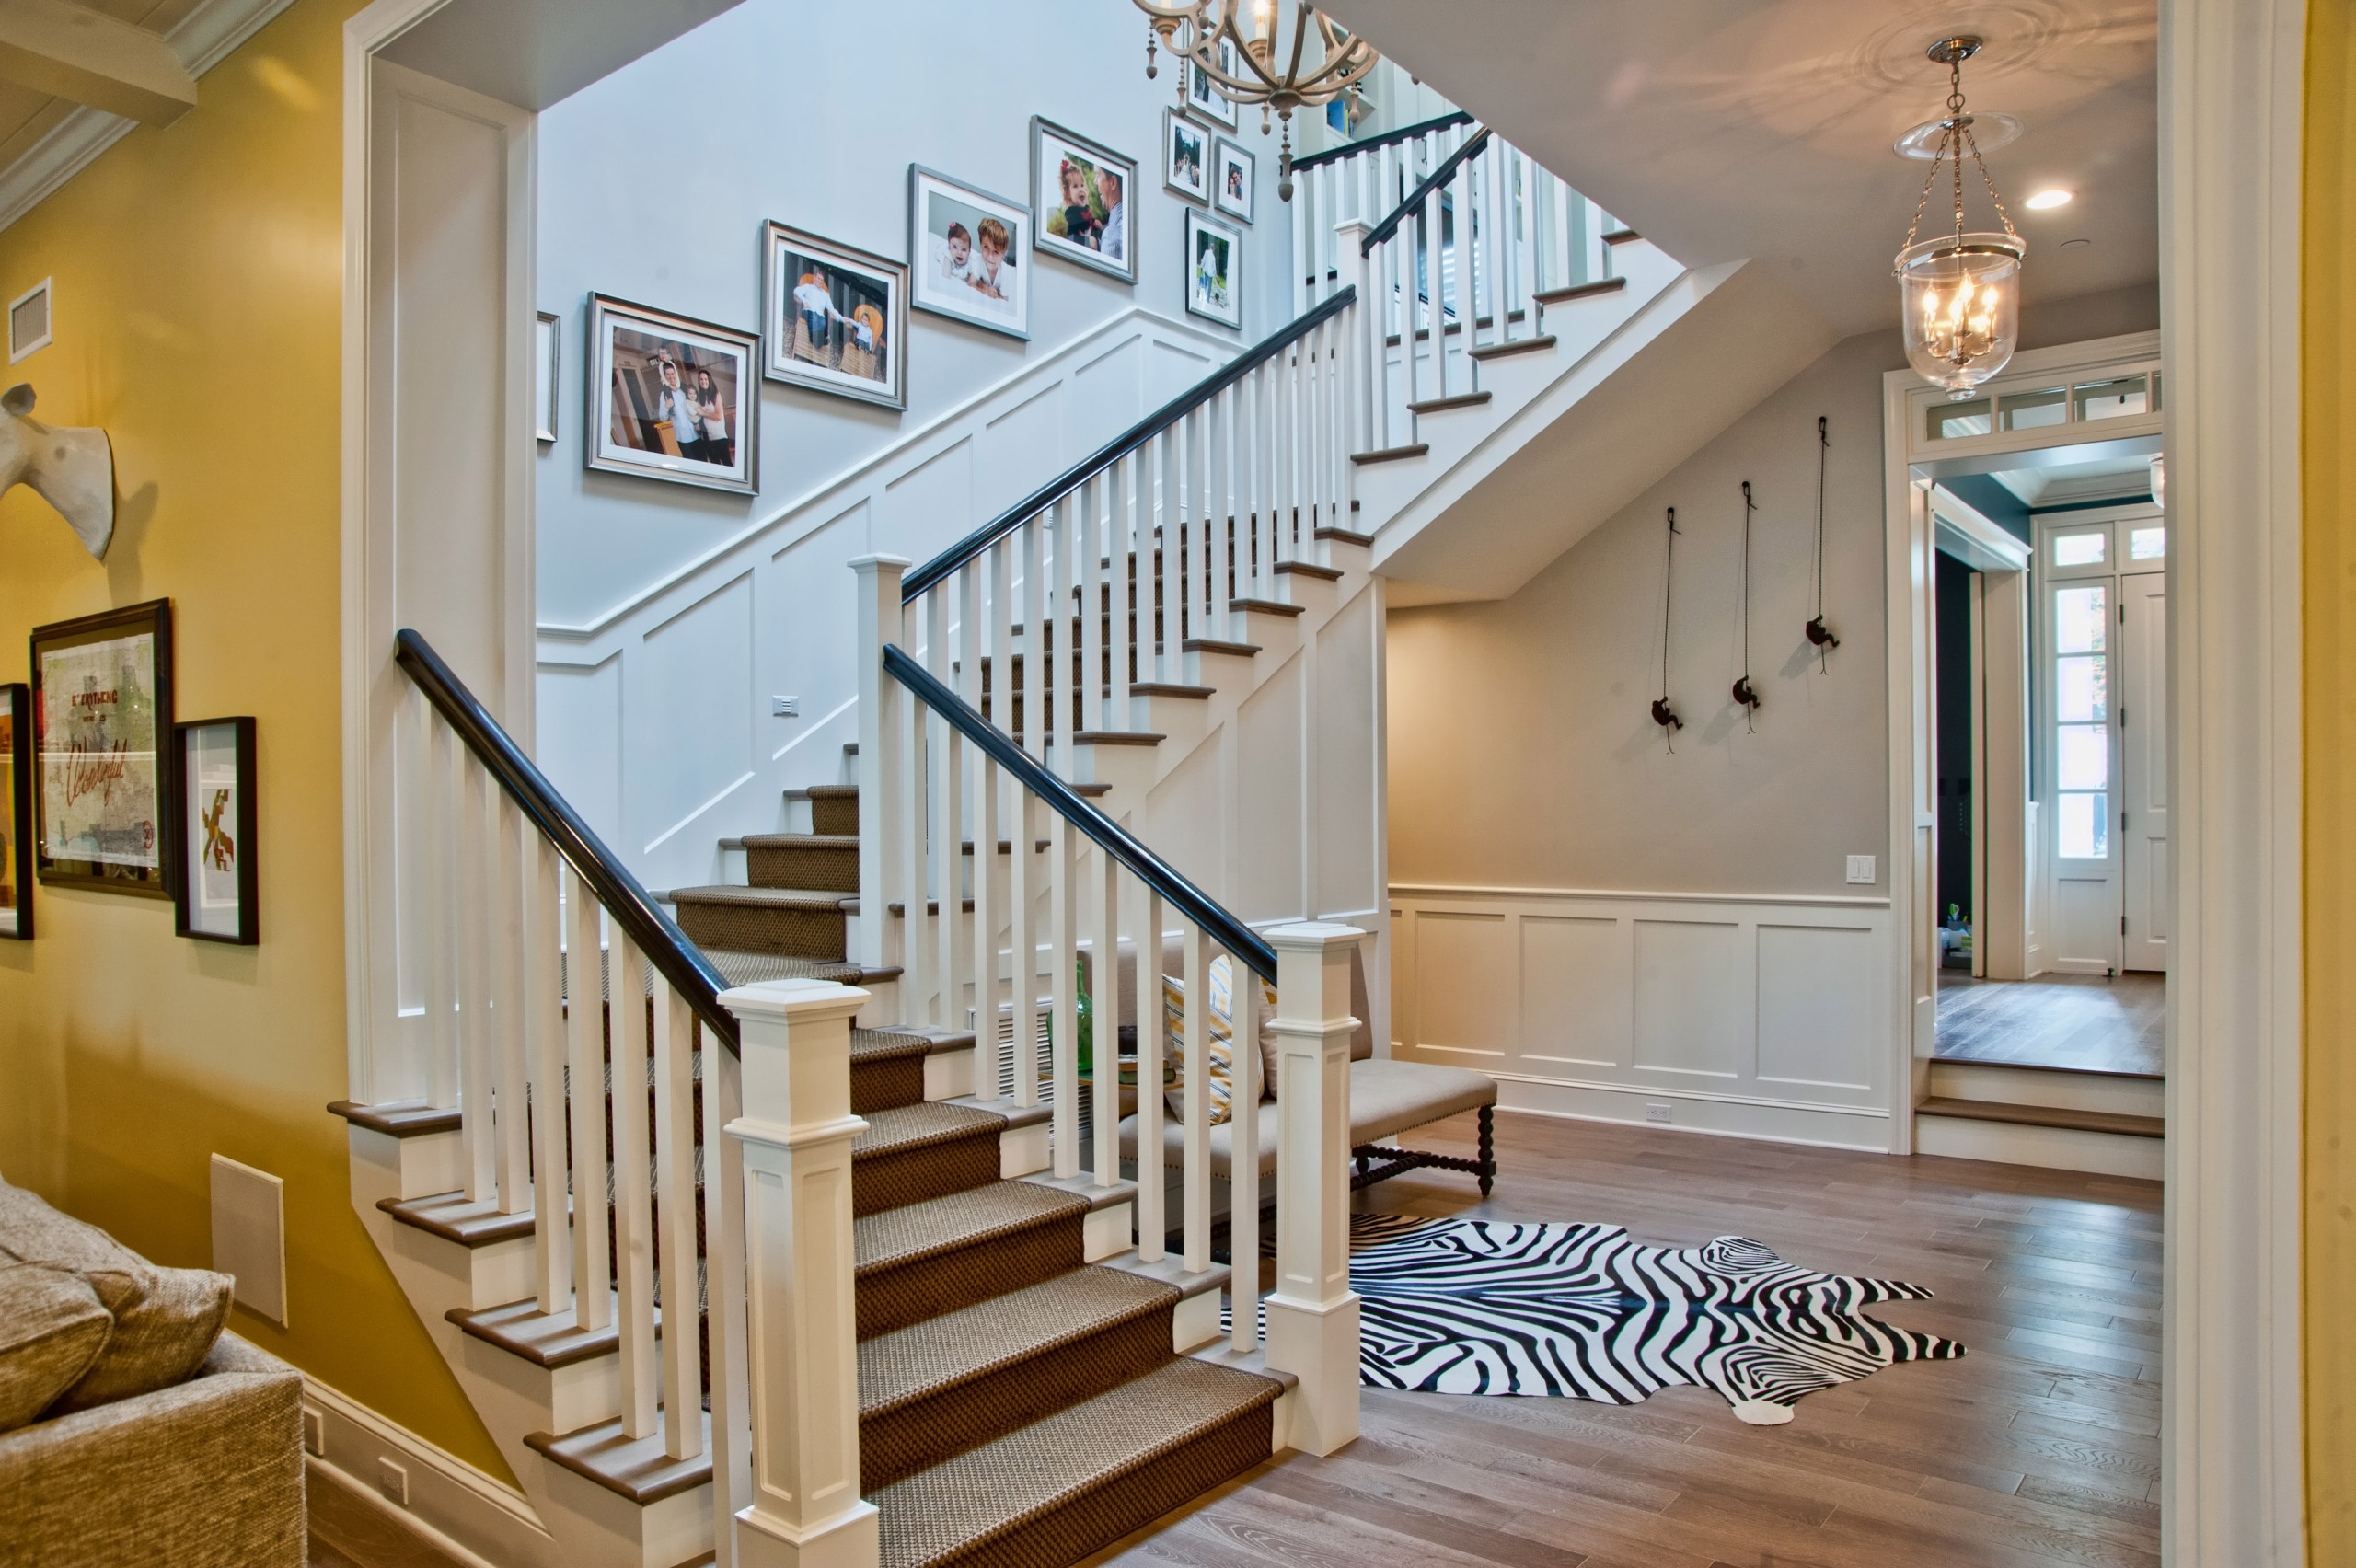 Exterior Front Elevation Staircase Houzz | House Design With Stairs In Front | Victorian | Second Floor | Colour | Residential | Low Cost 2 Bhk House